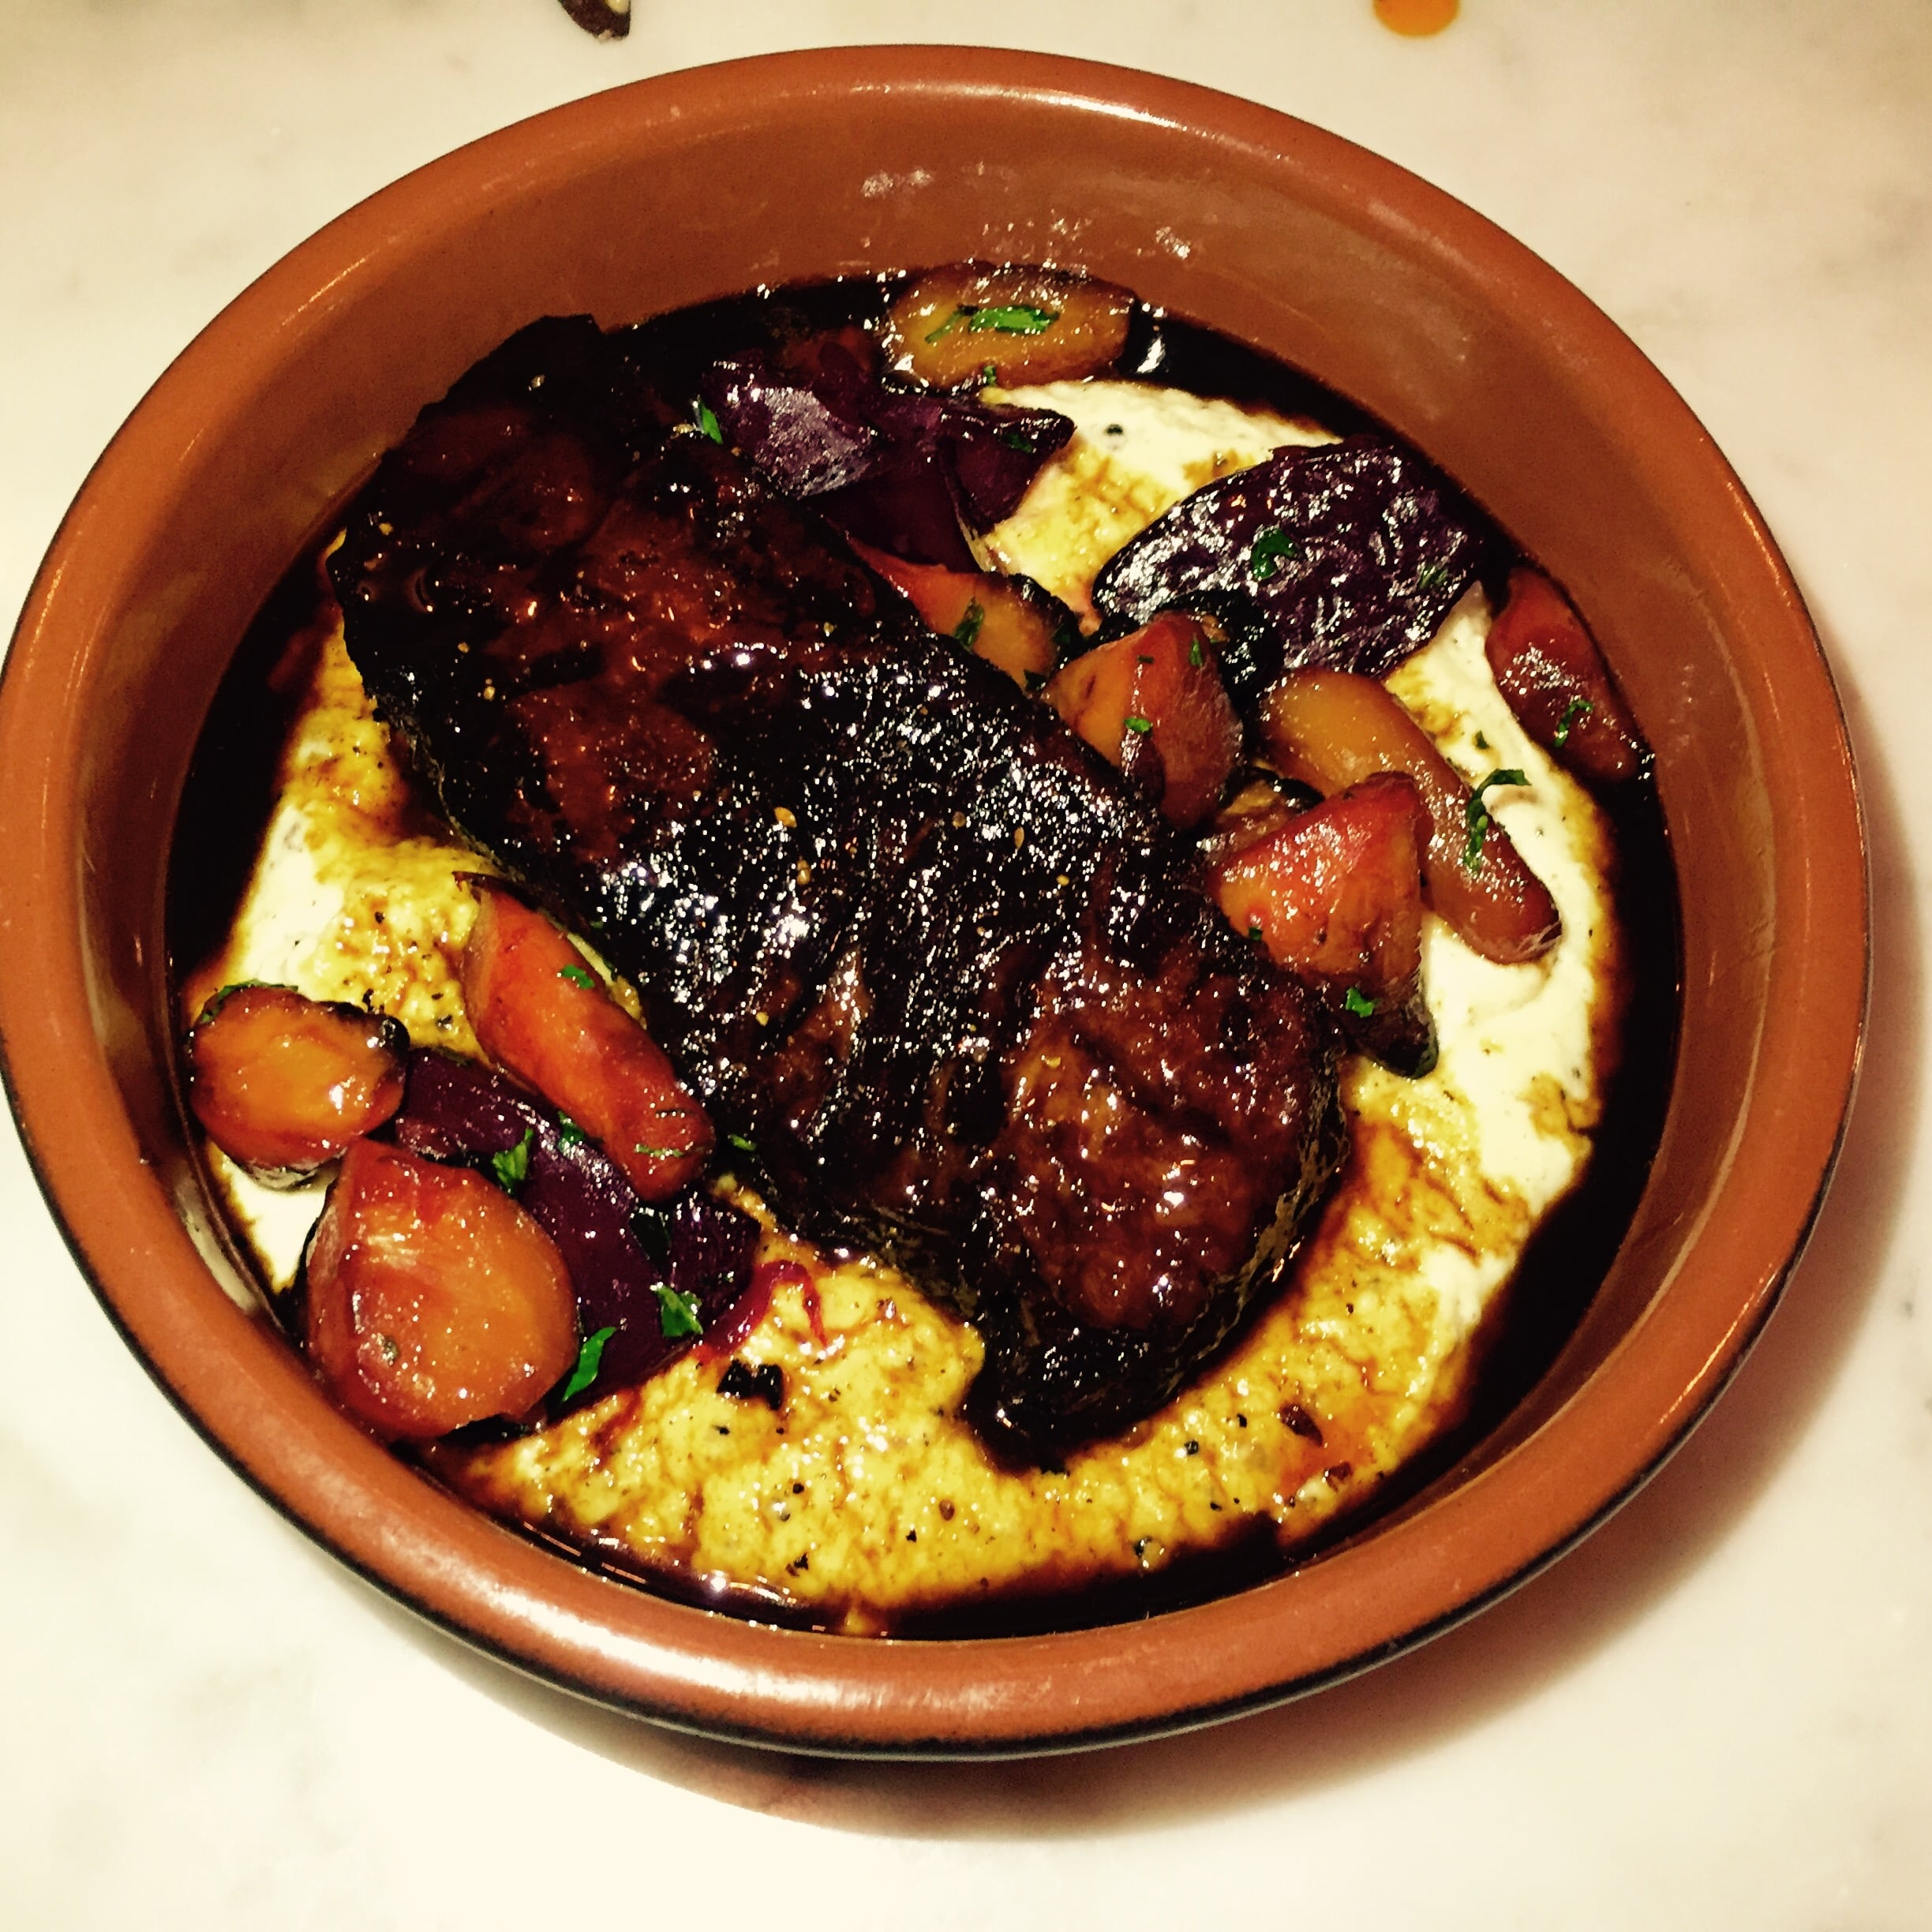 Braised Beef Shortribs with truffles semolina polenta and glazed roots.